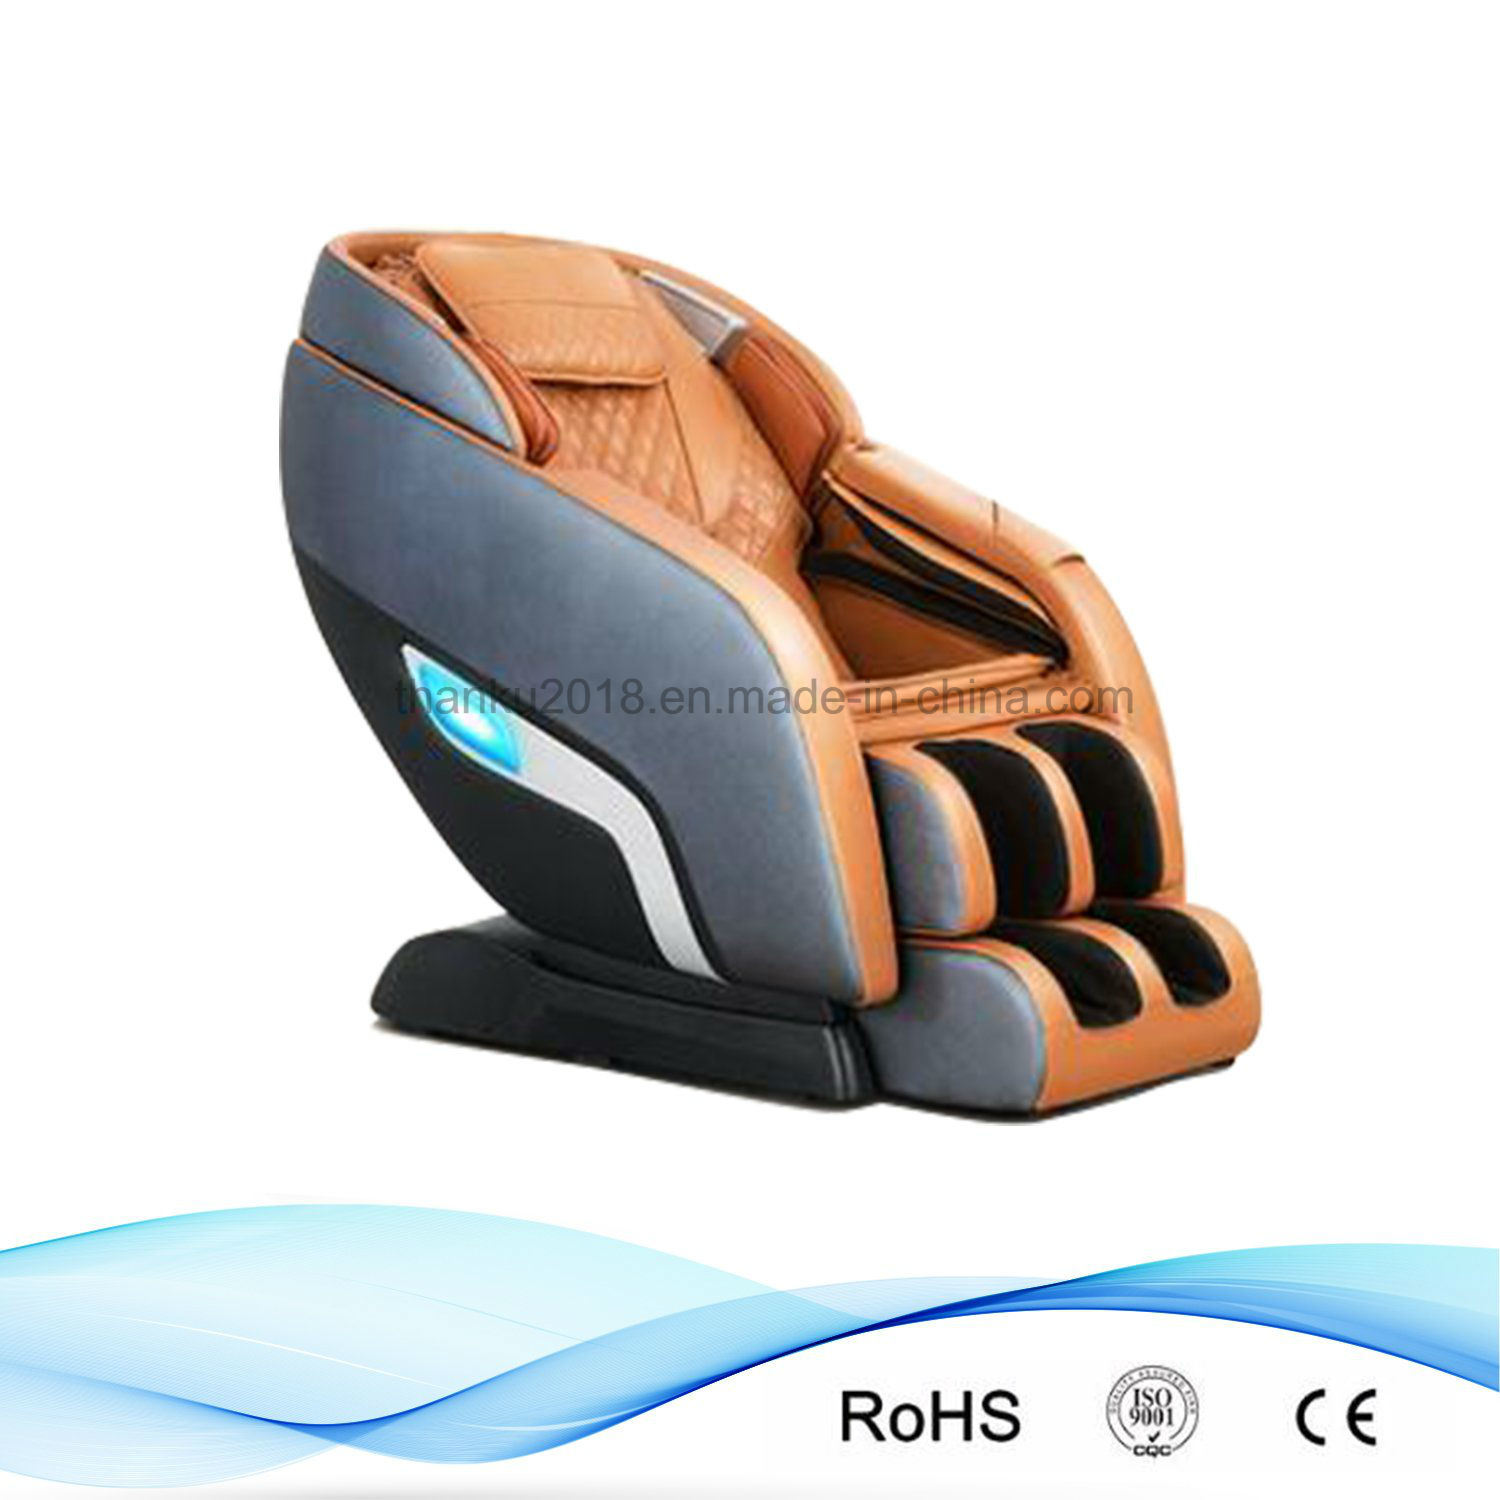 Best Massage Chair In The World China Best Massage Chair Best Massage Chair Manufacturers Suppliers Price Made In China